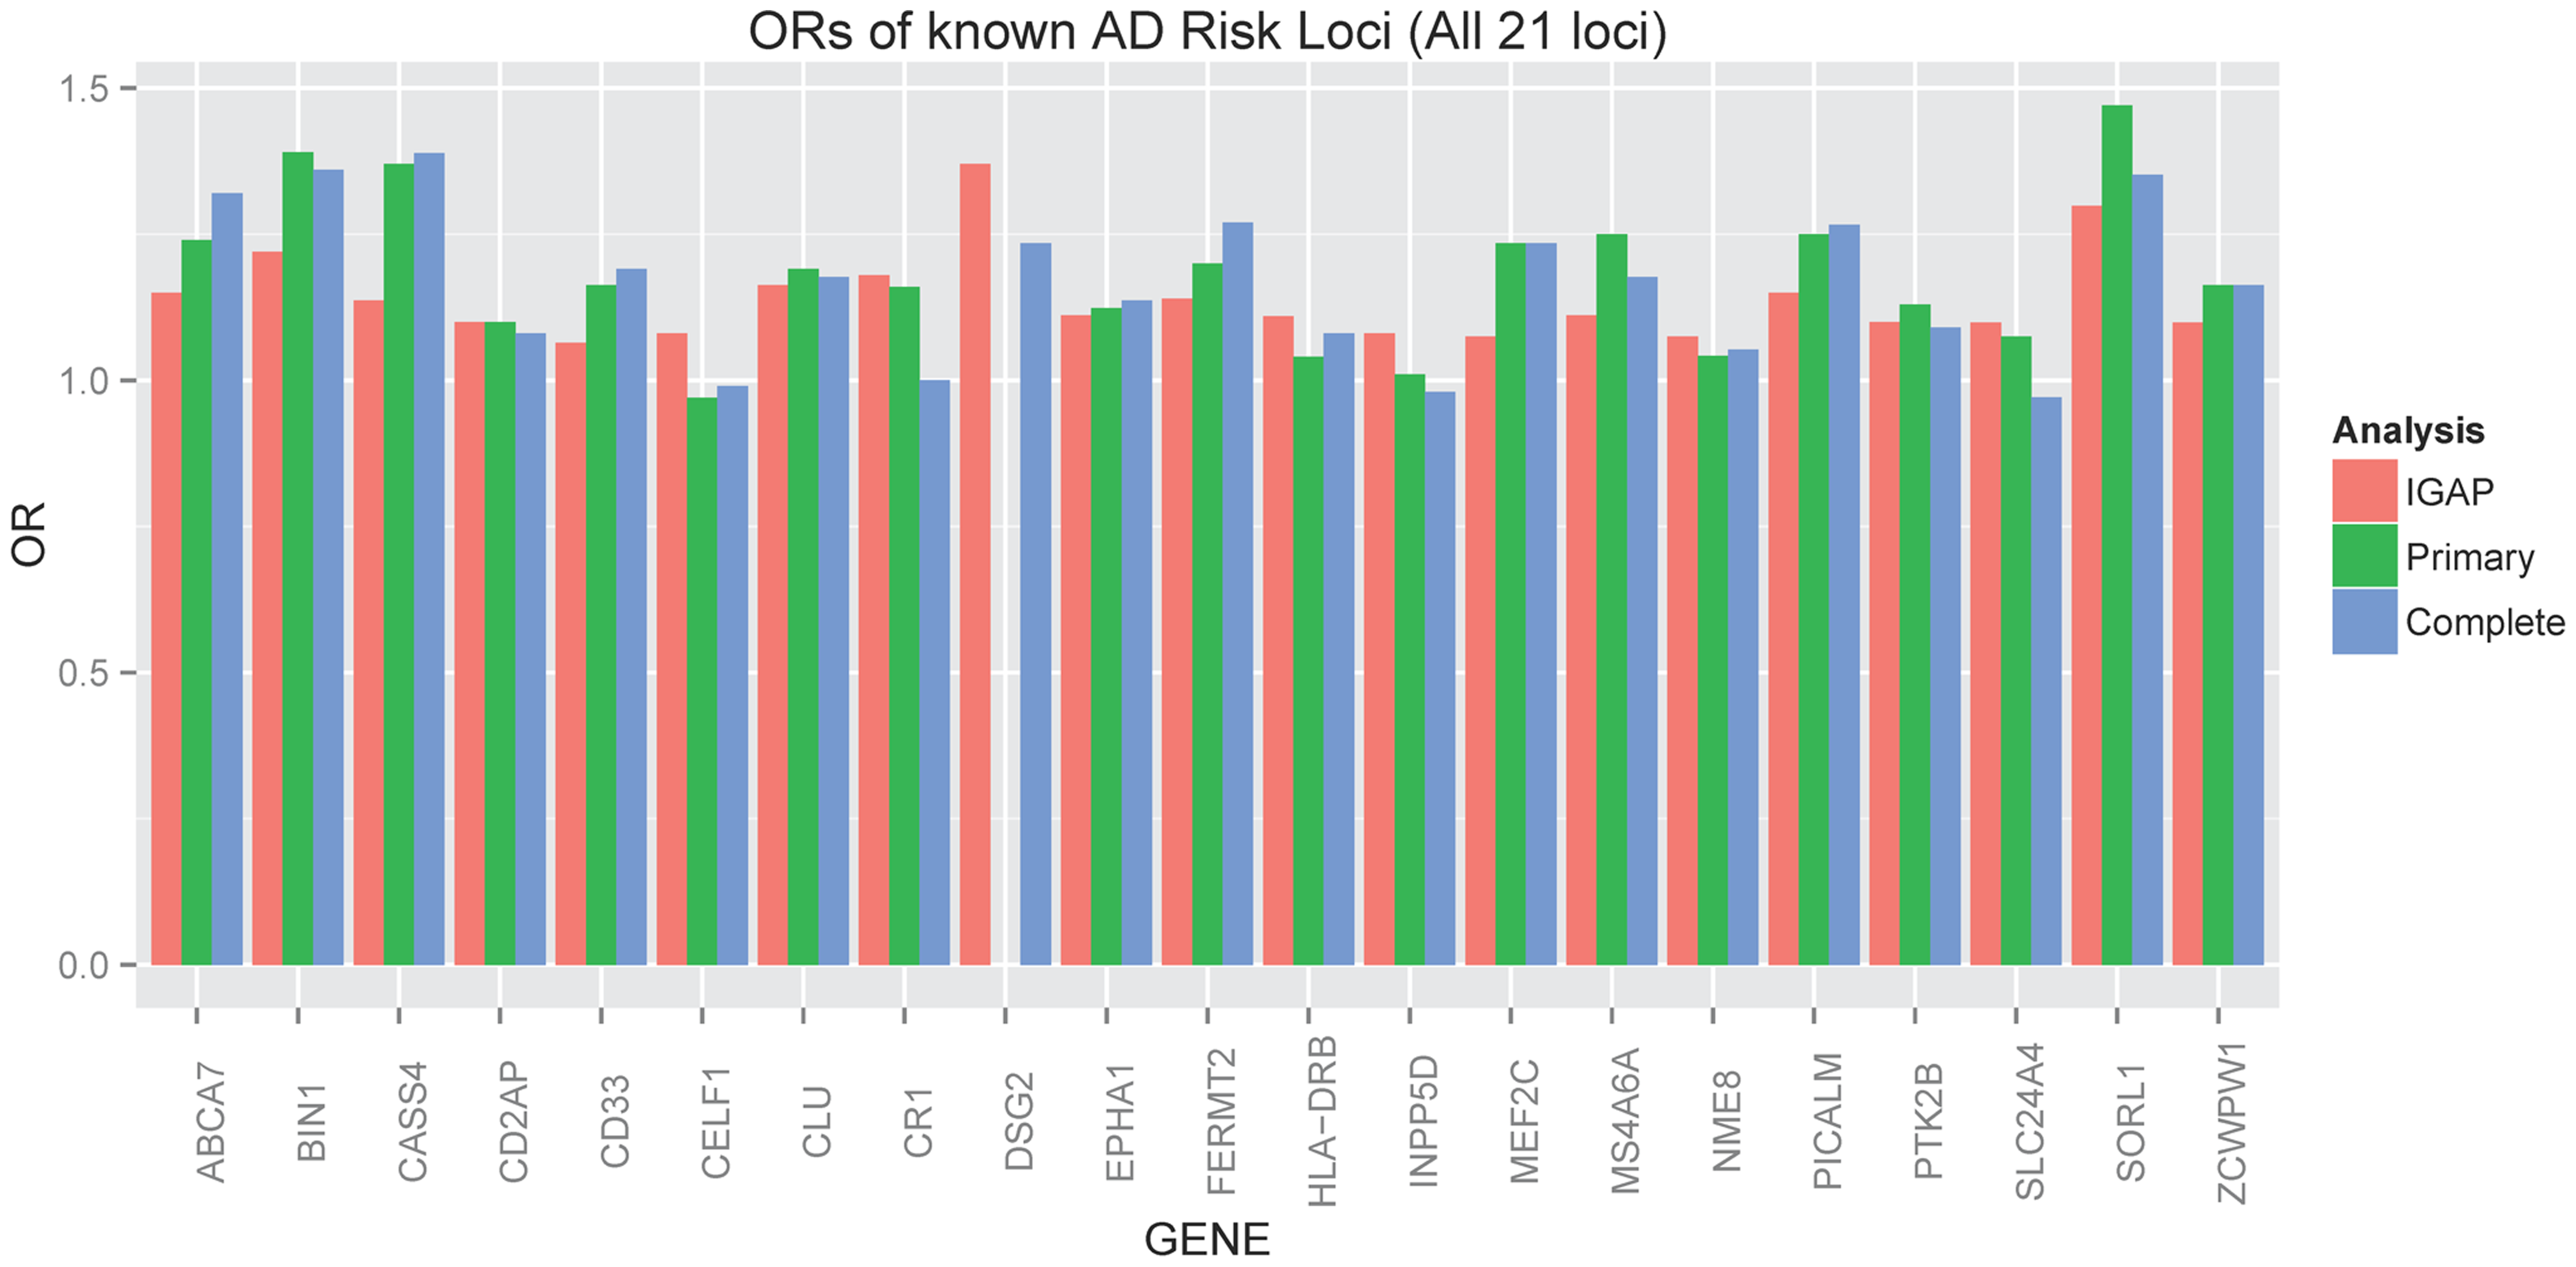 Barplot of OR for known AD risk loci (all 21 loci).